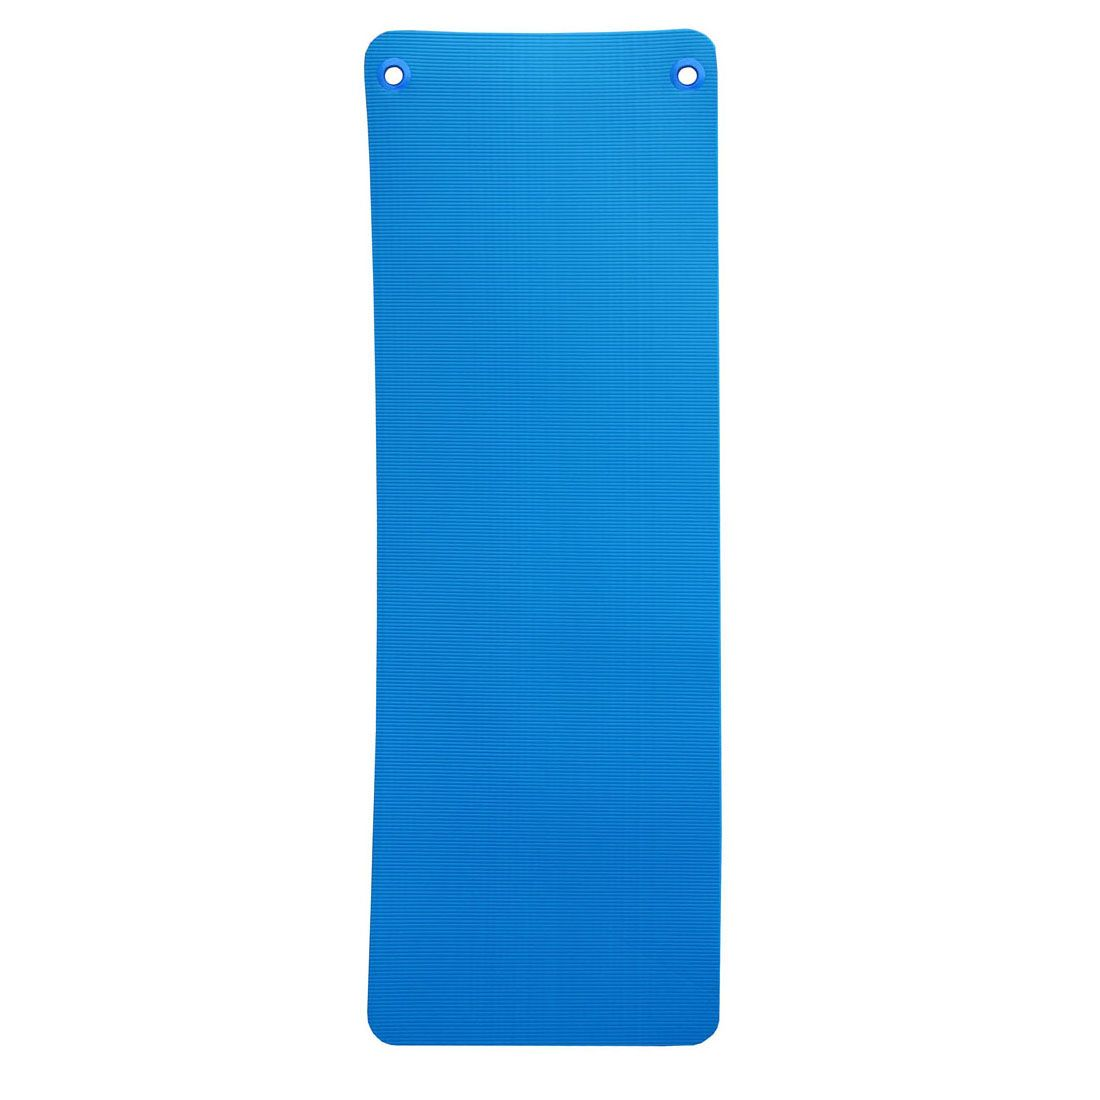 Thick Rubber Mats For Sale Rubber Gym Floor Mat 4x6 Ft 1